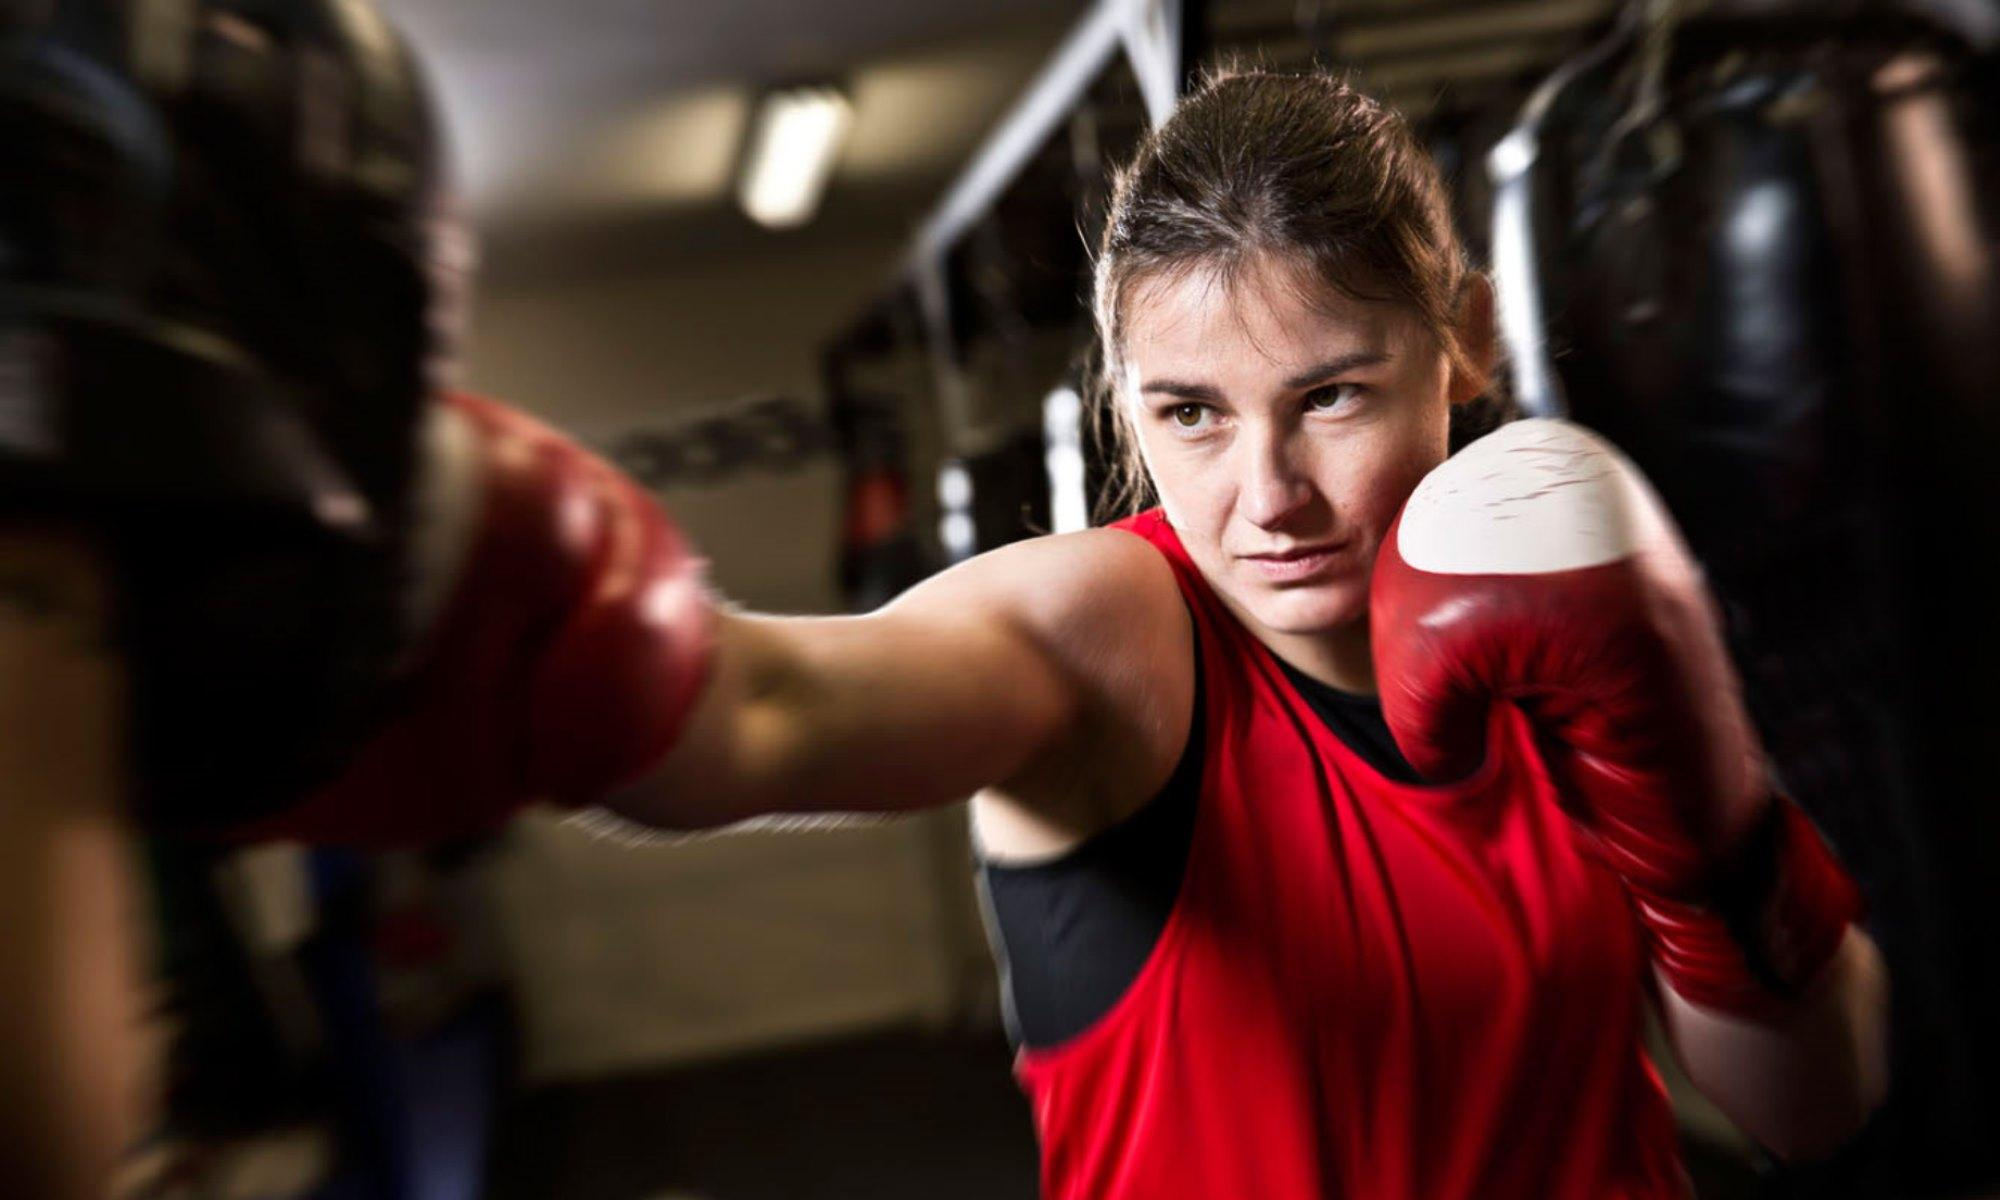 Katie Taylor bout set to be postponed